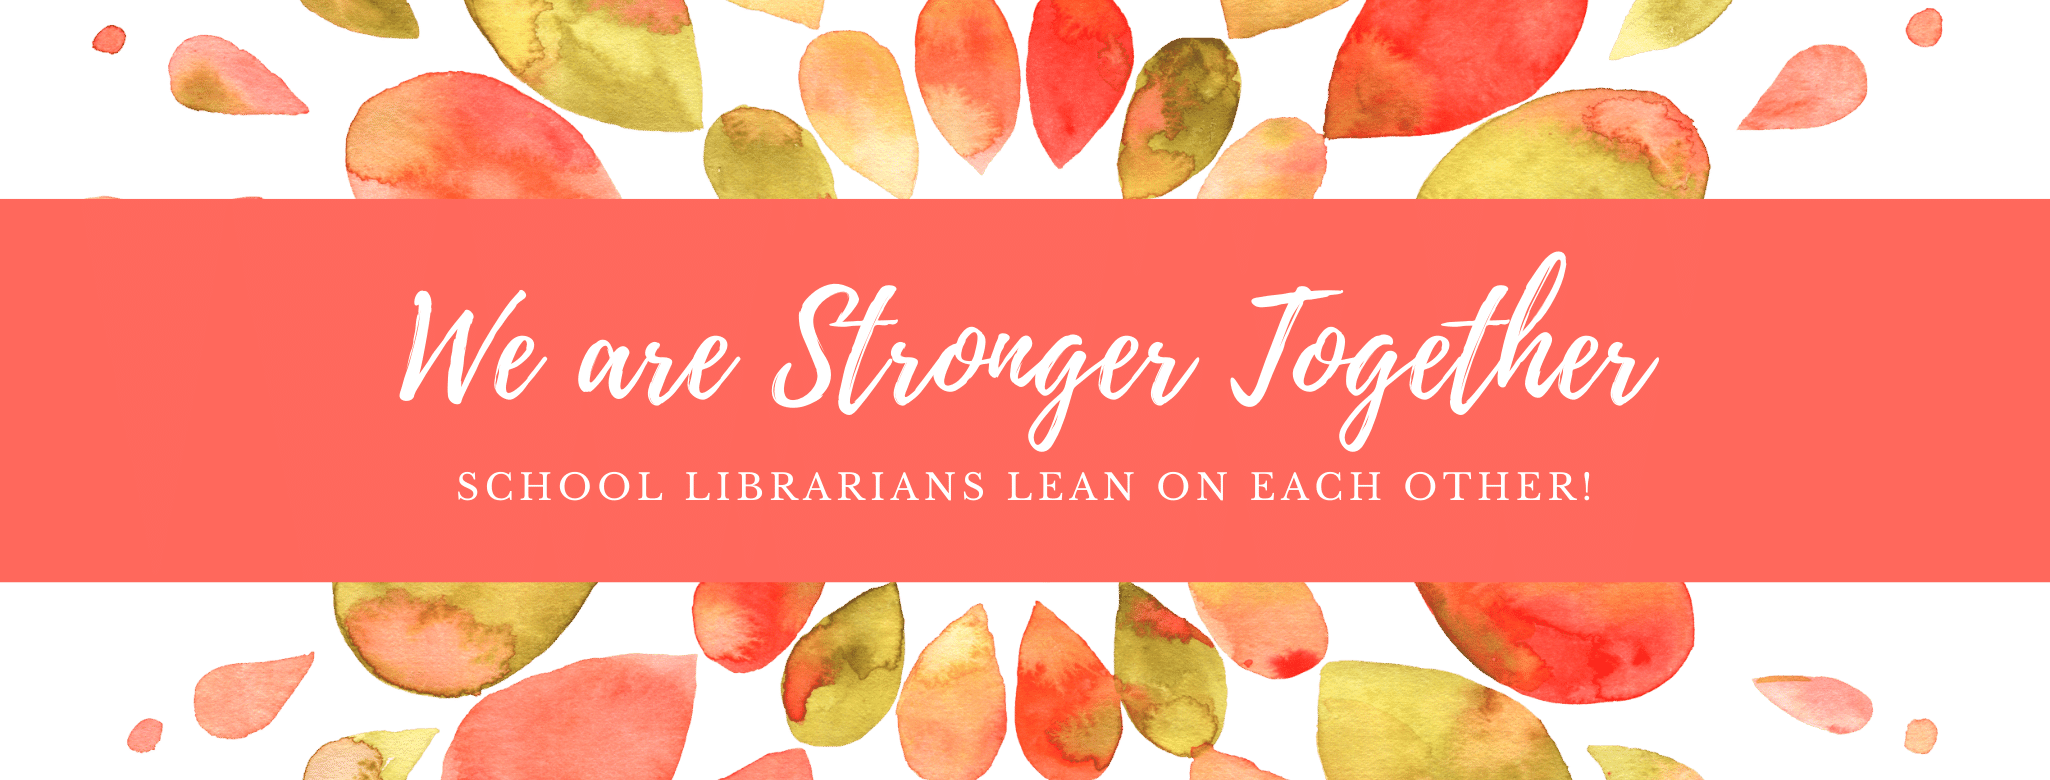 We are stronger together: school librarians lean on each other